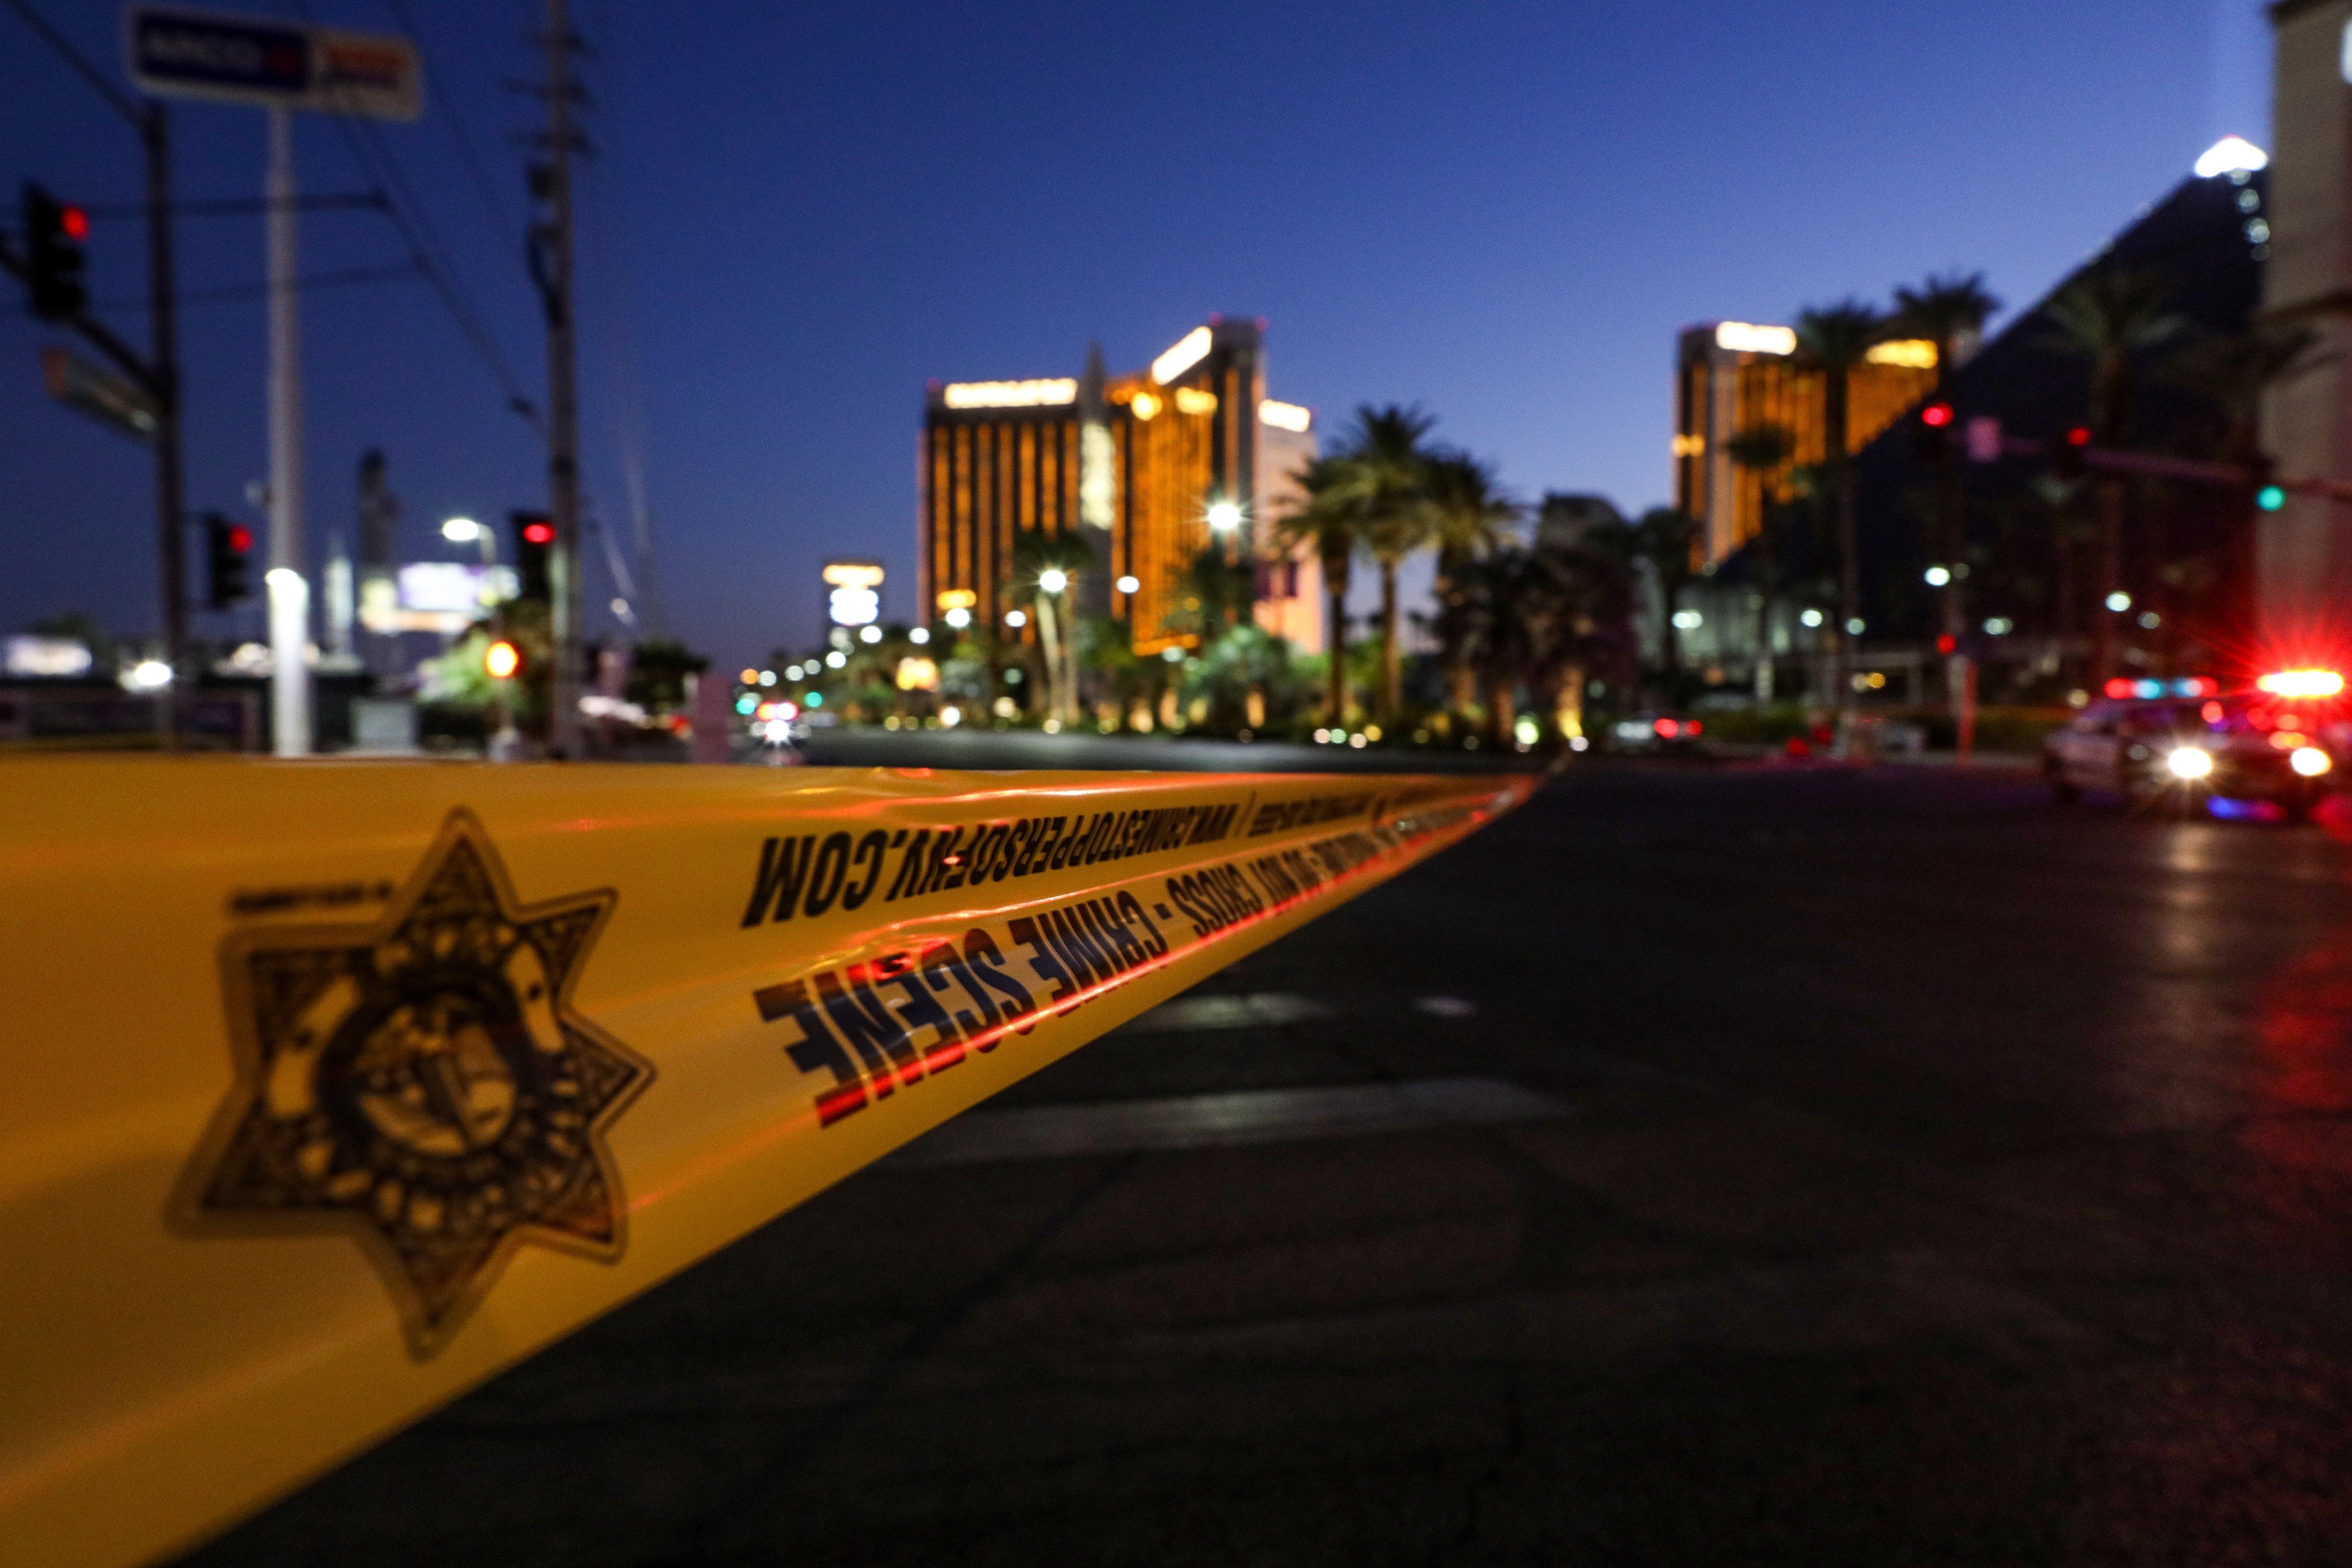 LAS VEGAS, USA - OCTOBER 02: Police block the roads leading to the Mandalay Hotel (background) and inspect the site after a gunman attack in Las Vegas, NV, United States on October 02, 2017. At least 59 people were killed and more than 527 others wounded at a country music concert in the city of Las Vegas late Sunday night in the mass shooting. A gunman -- identified as Stephen Paddock -- opened fire on more than 10,000 concert-goers at an outdoor venue from across the Mandalay Bay Hotel at around 10.08 p.m. local time (0508GMT Monday), Clark County Sheriff Joseph Lambardo from the Las Vegas Metropolitan Police Department (LVMPD) told reporters.  (Photo by Bilgin S. Sasmaz/Anadolu Agency/Getty Images)